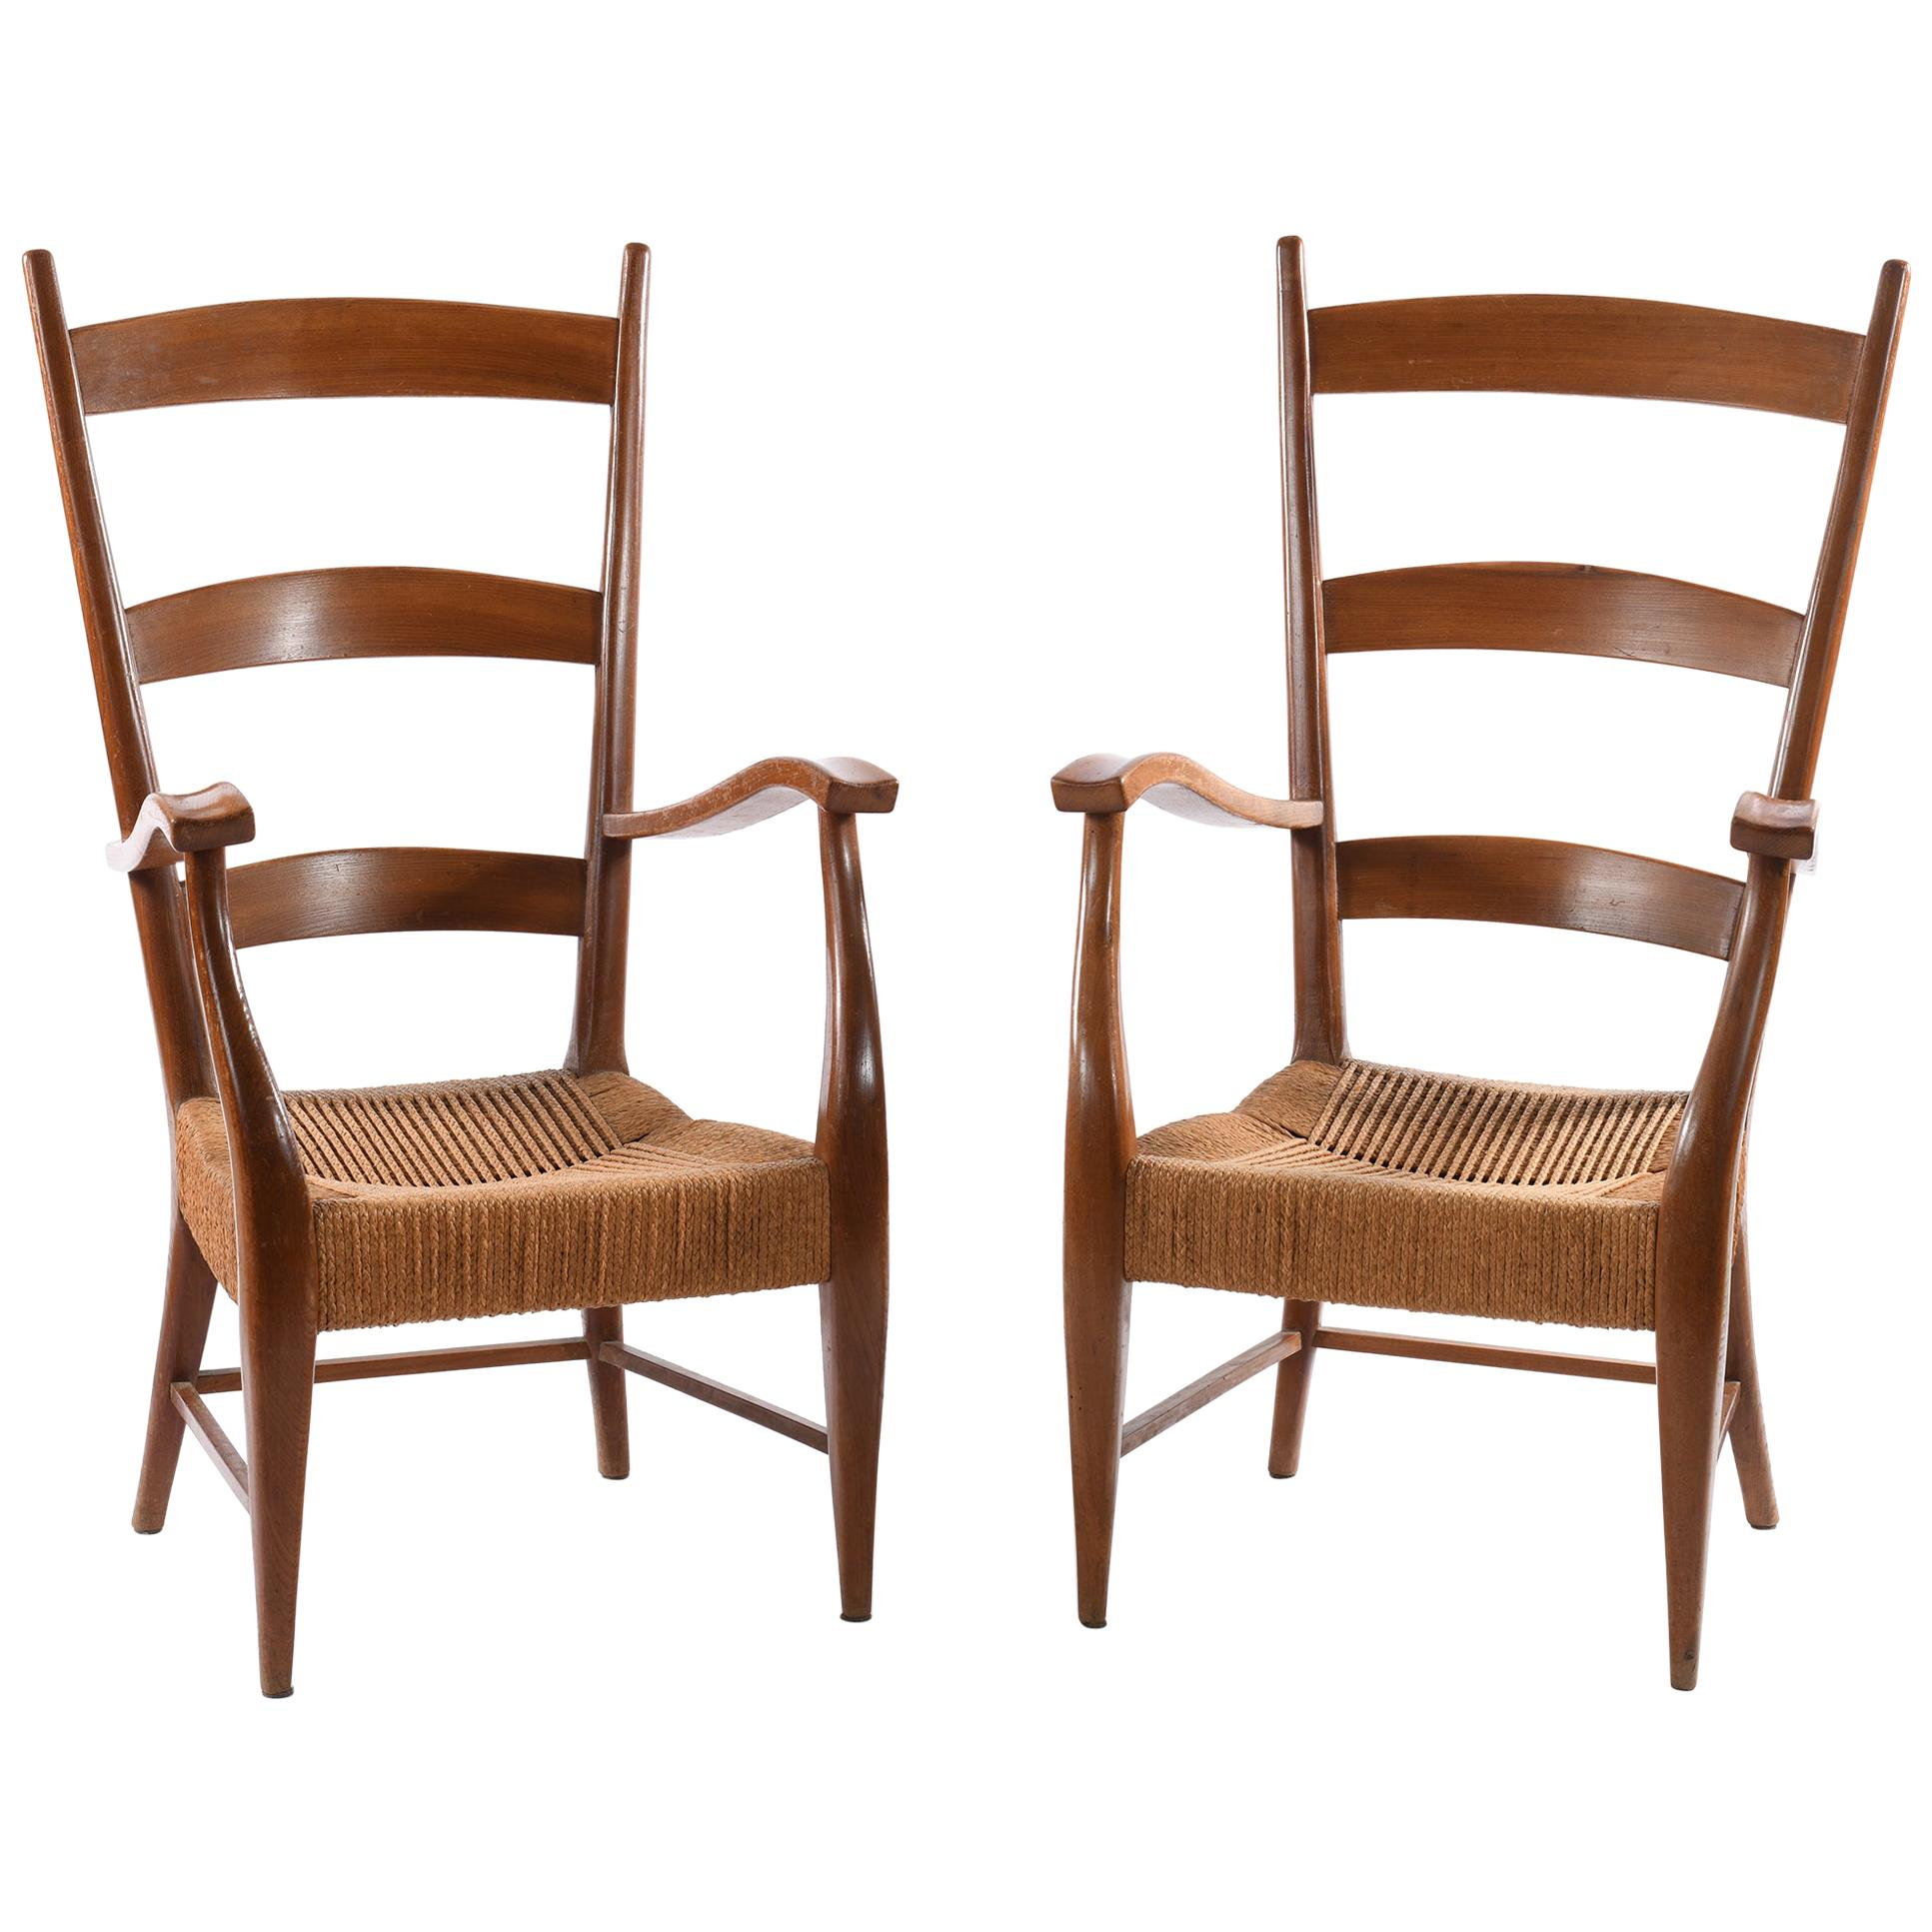 Pecorini Florence Italy Midcentury Pair of Armchairs Seat with Braided Rope